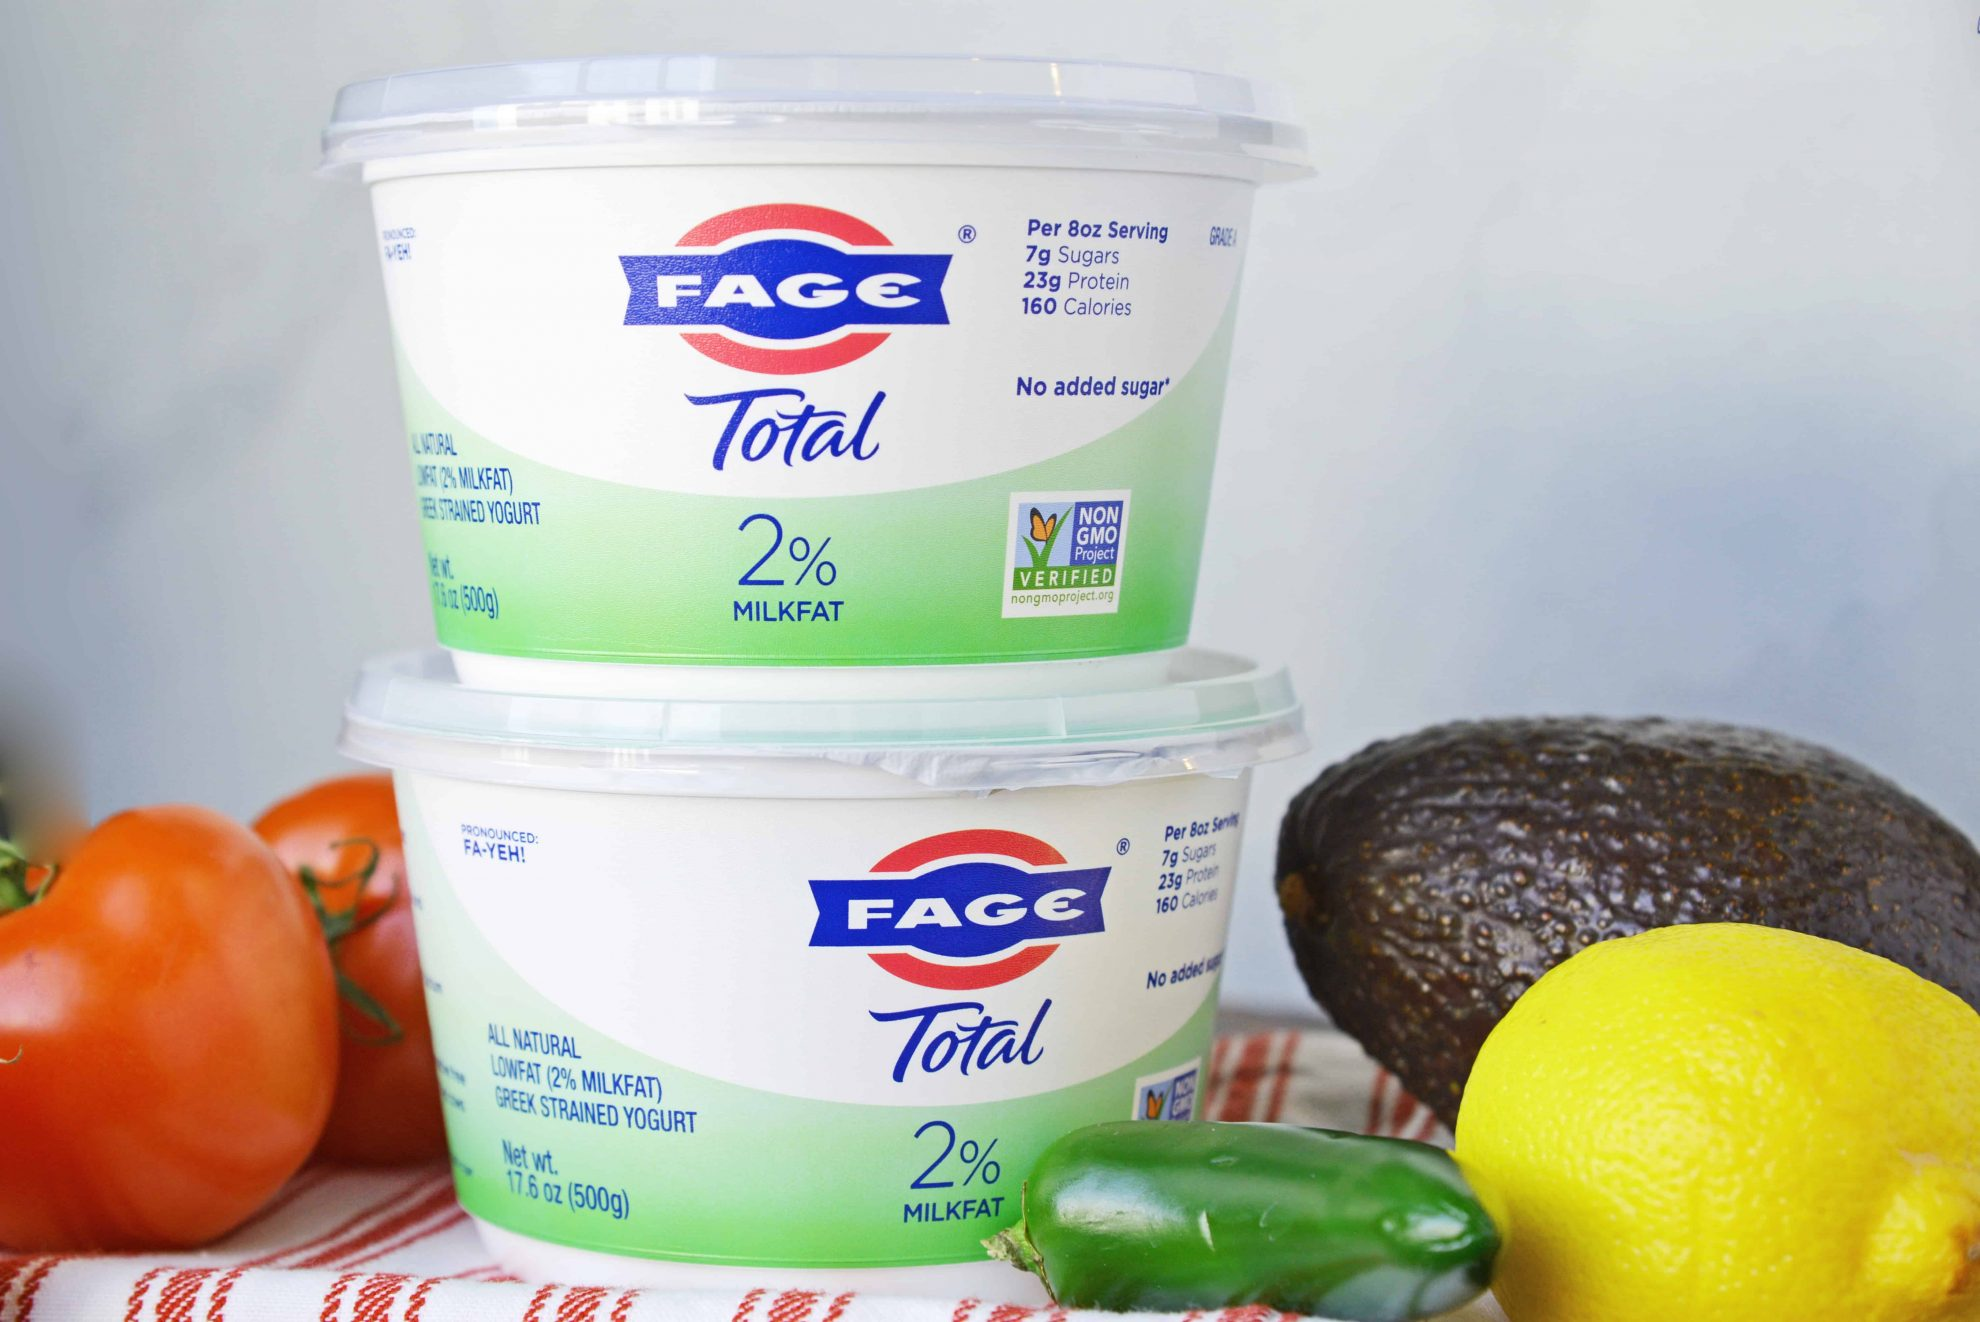 Two FAGE yogurt cups stacked